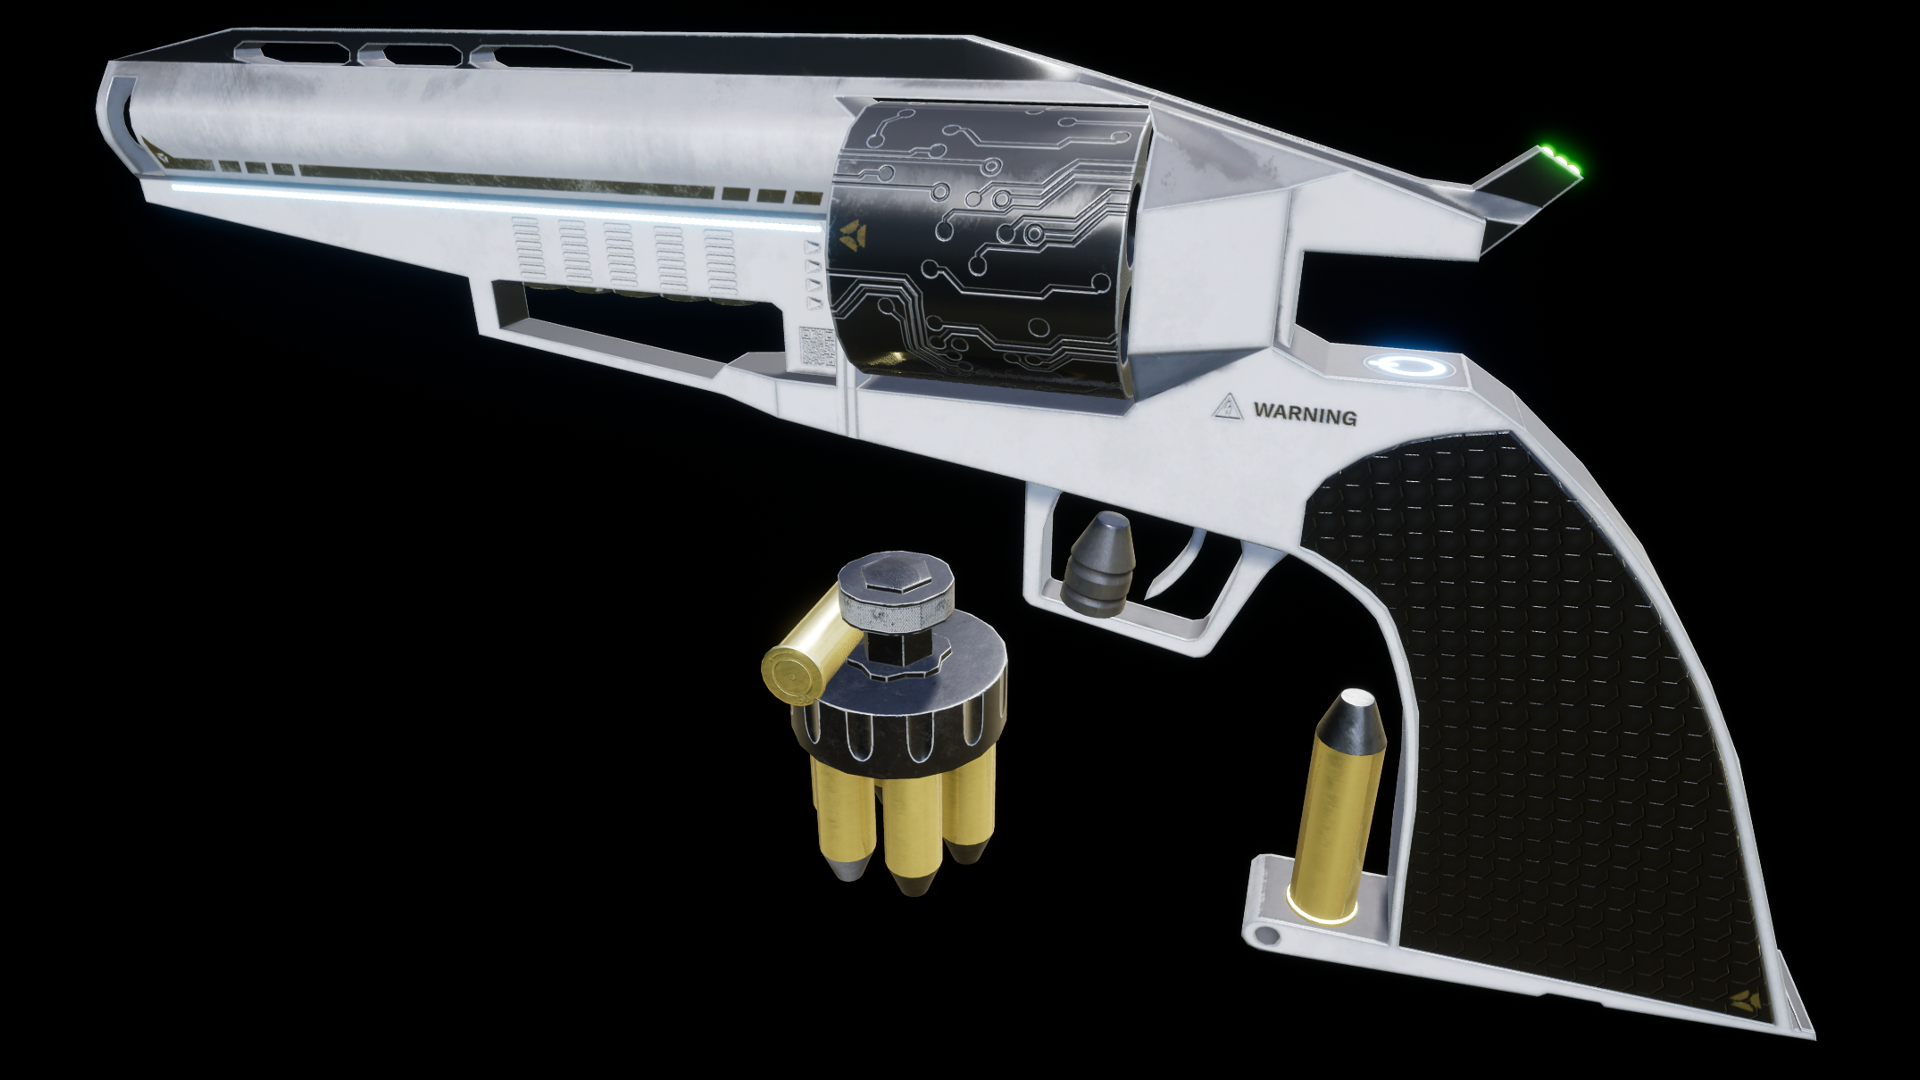 Animated Futuristic Revolver by Indants Studio in Weapons ...